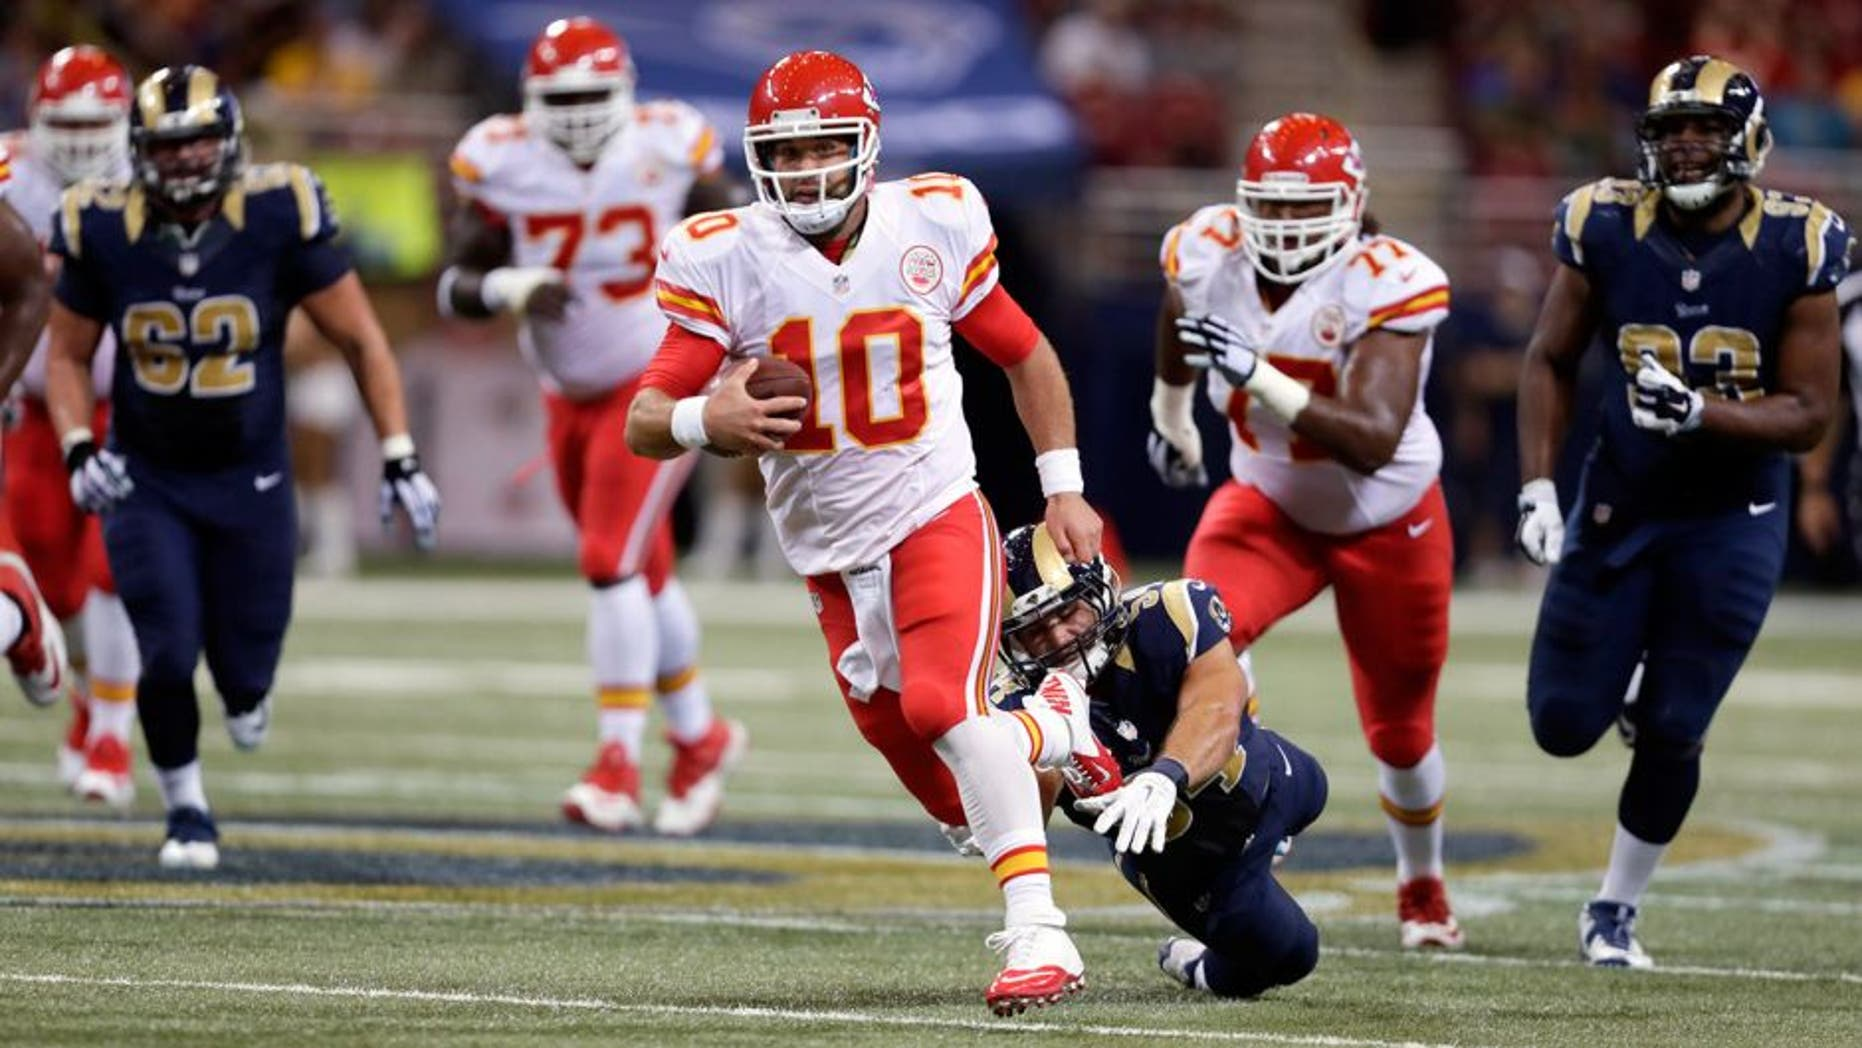 Kansas City Chiefs quarterback Chase Daniel scrambles for a 14-yard gain during the second quarter of an NFL preseason football game against the St. Louis Rams Thursday, Sept. 3, 2015, in St. Louis. (AP Photo/Tom Gannam)